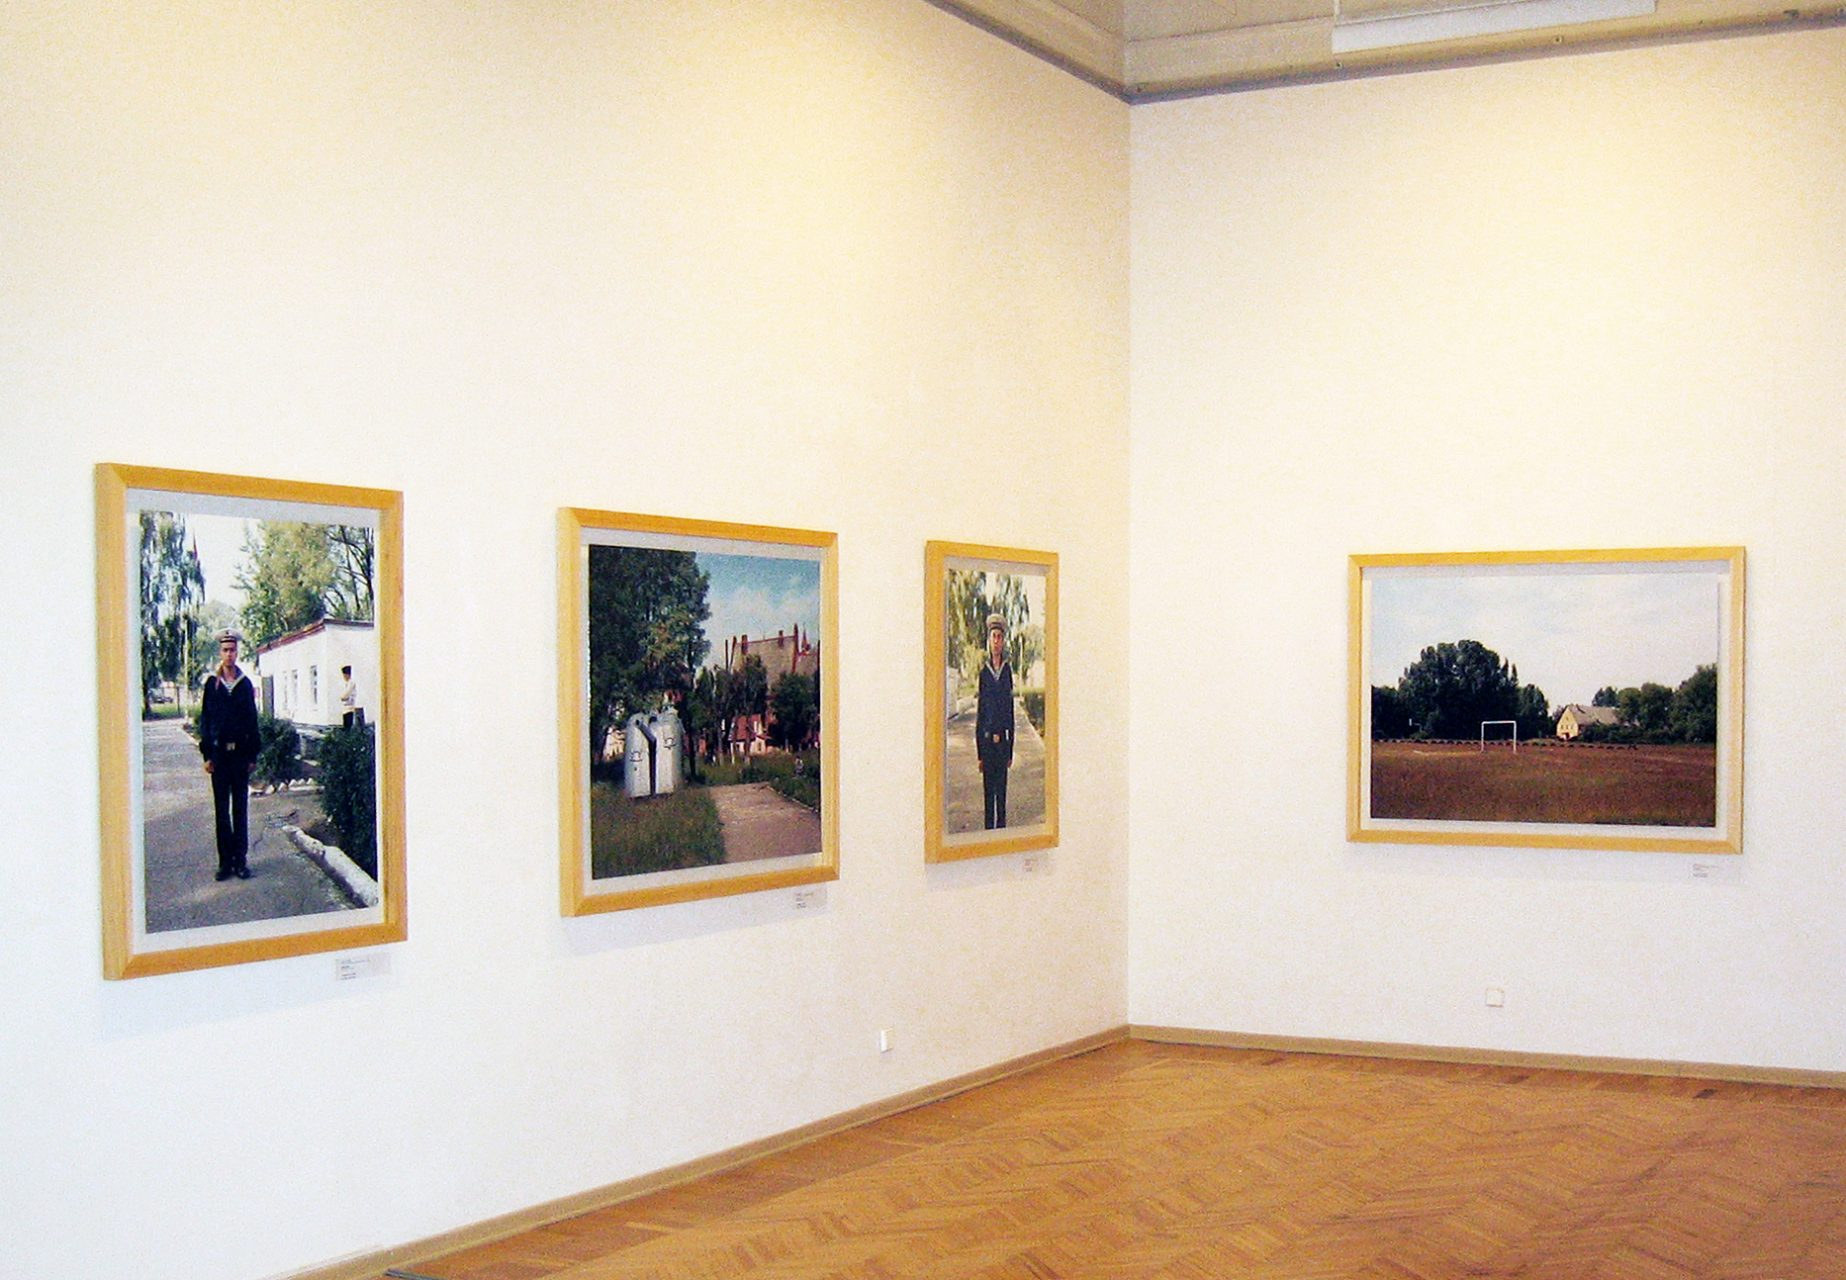 Anastasia Khoroshilova, Notes on the way, The State Russian Museum, St. Petersburg, 2006